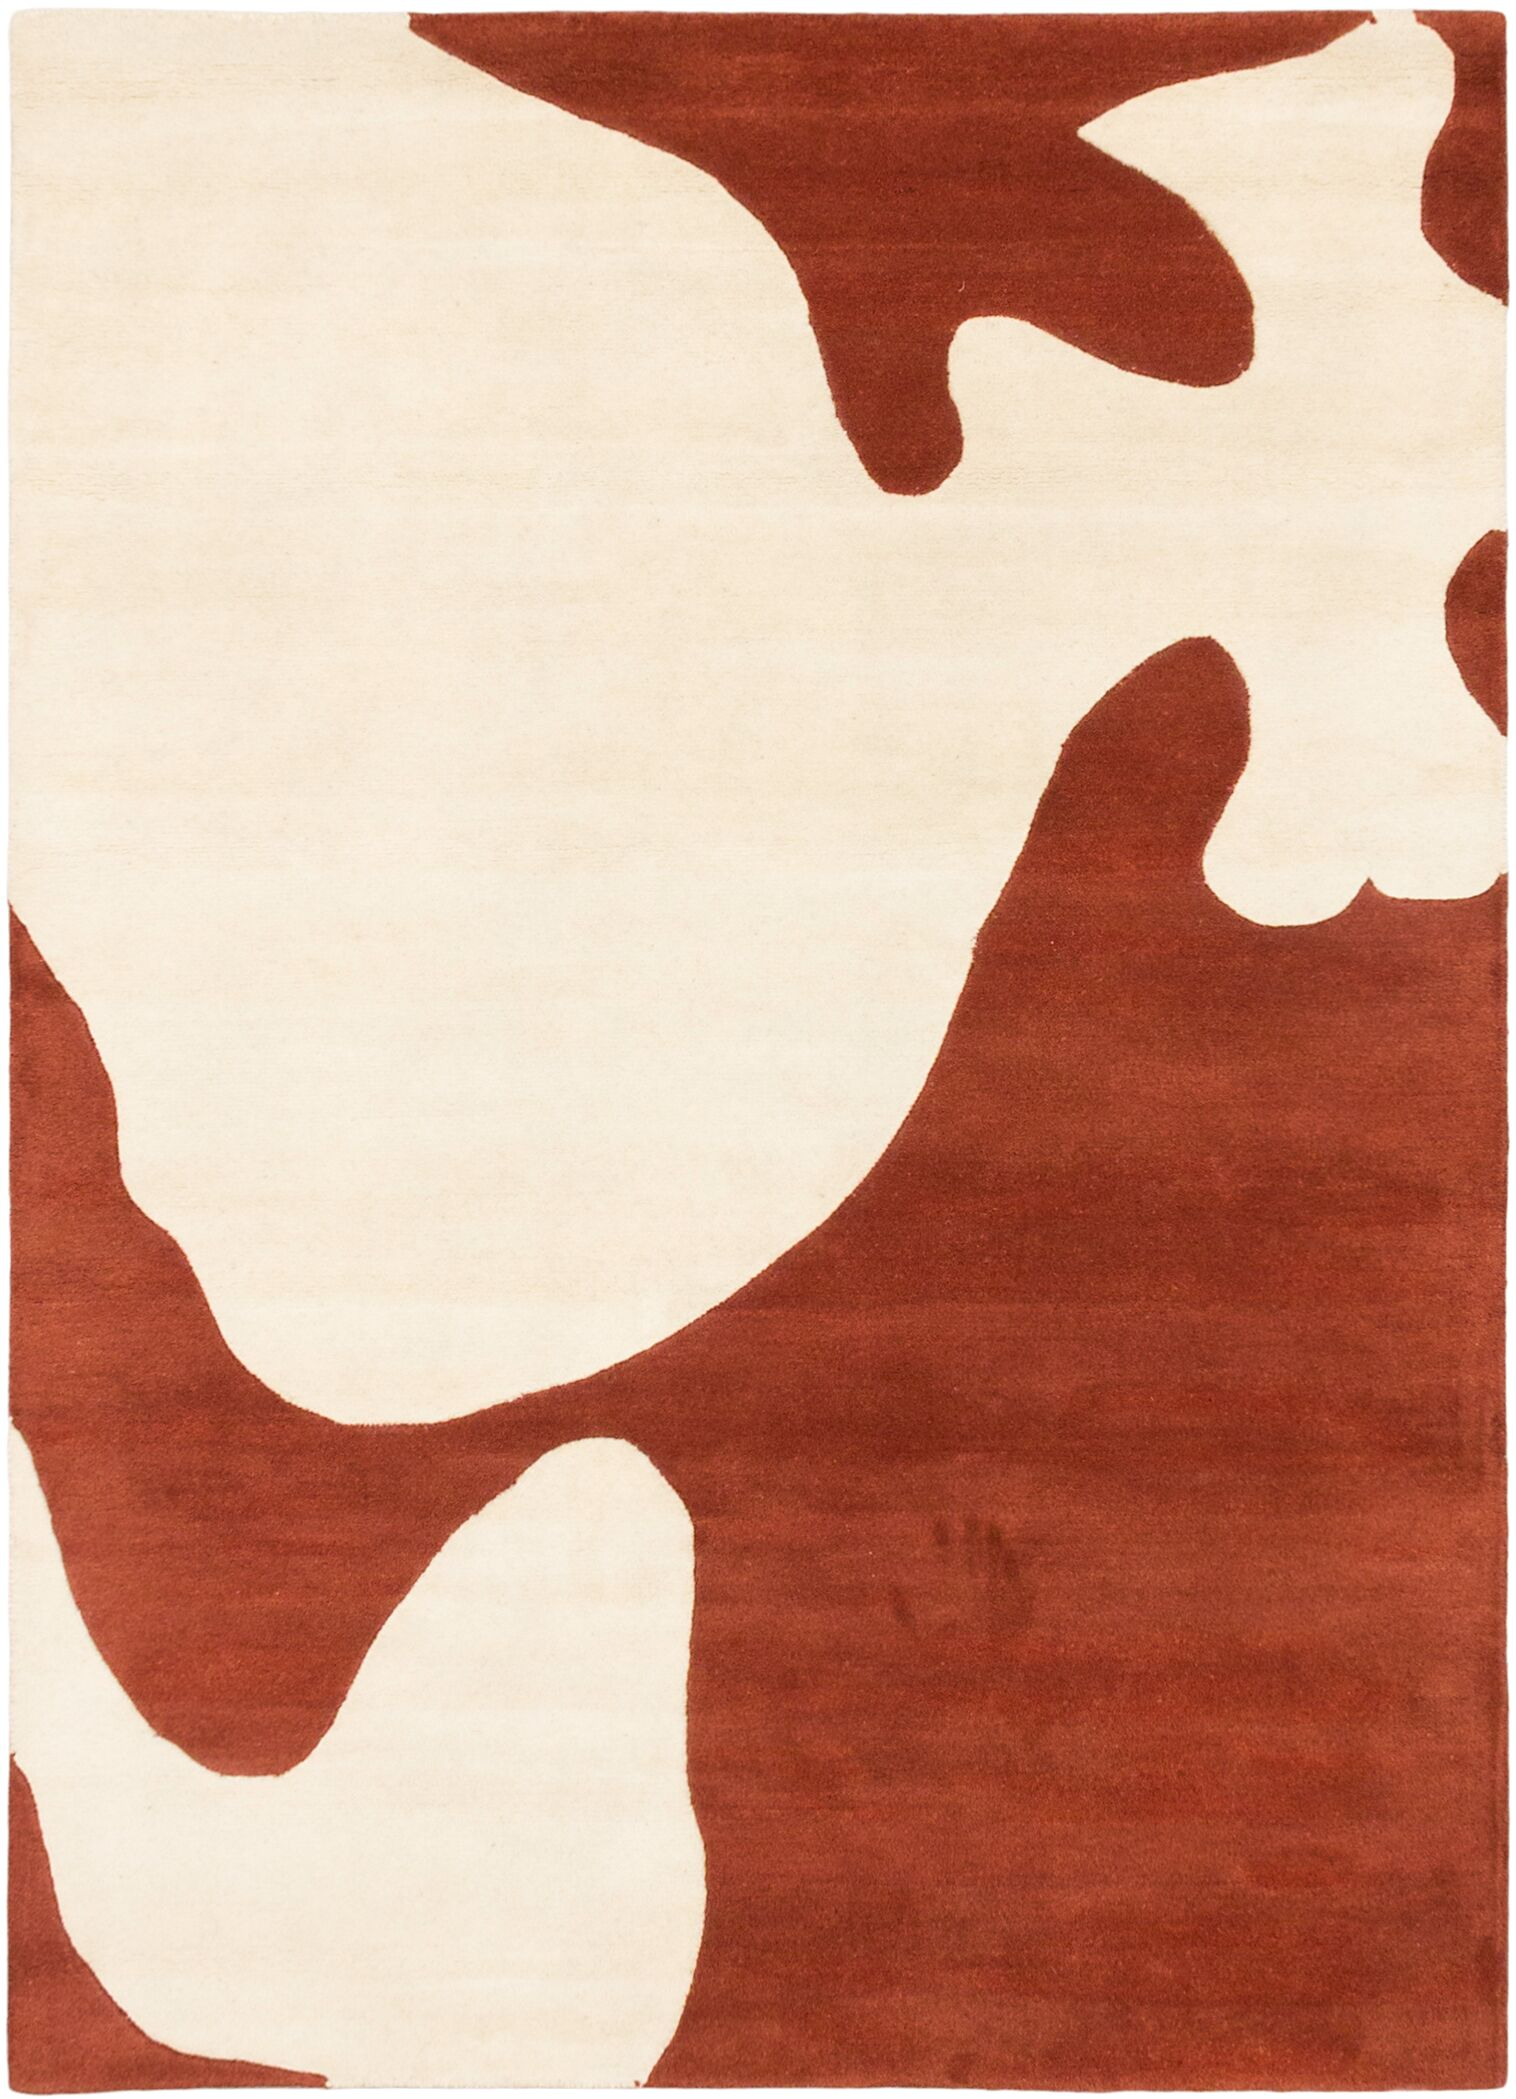 Sandra Hand-Tufted Cream/Dark Copper Area Rug